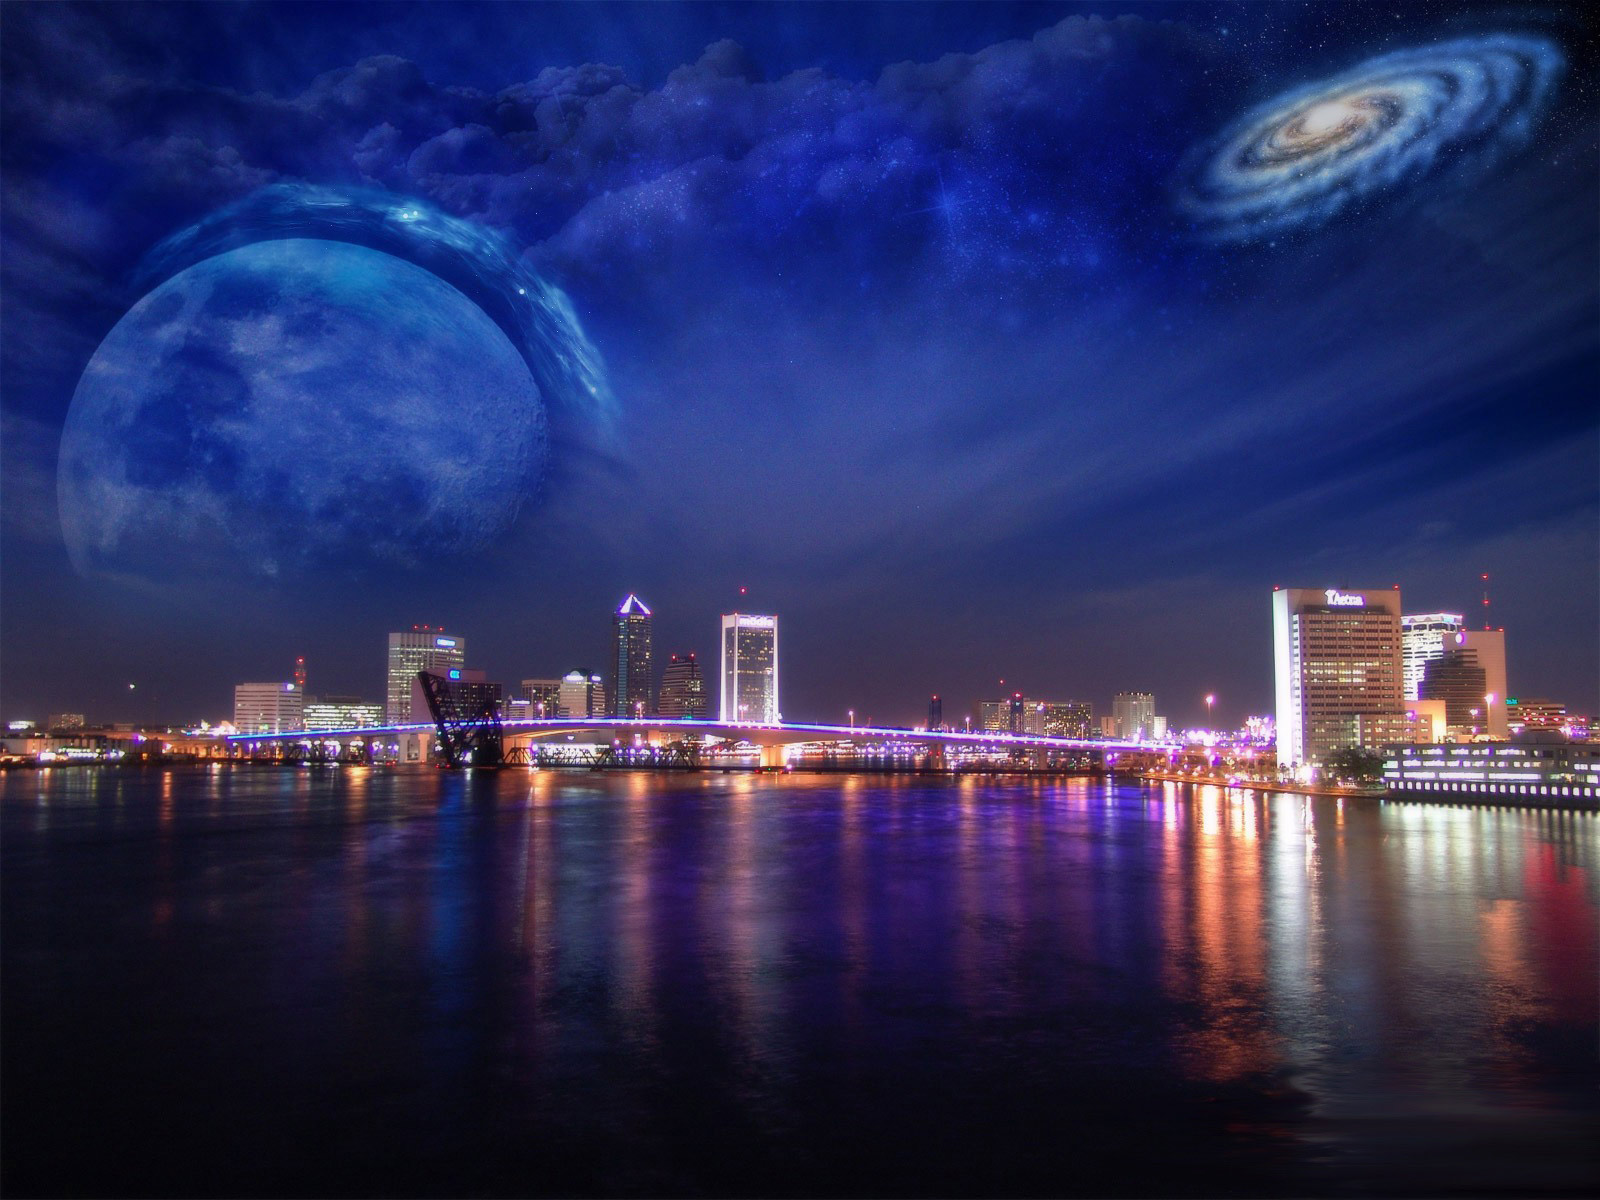 Night city images hd Wallpaper High Quality WallpapersWallpaper 1600x1200